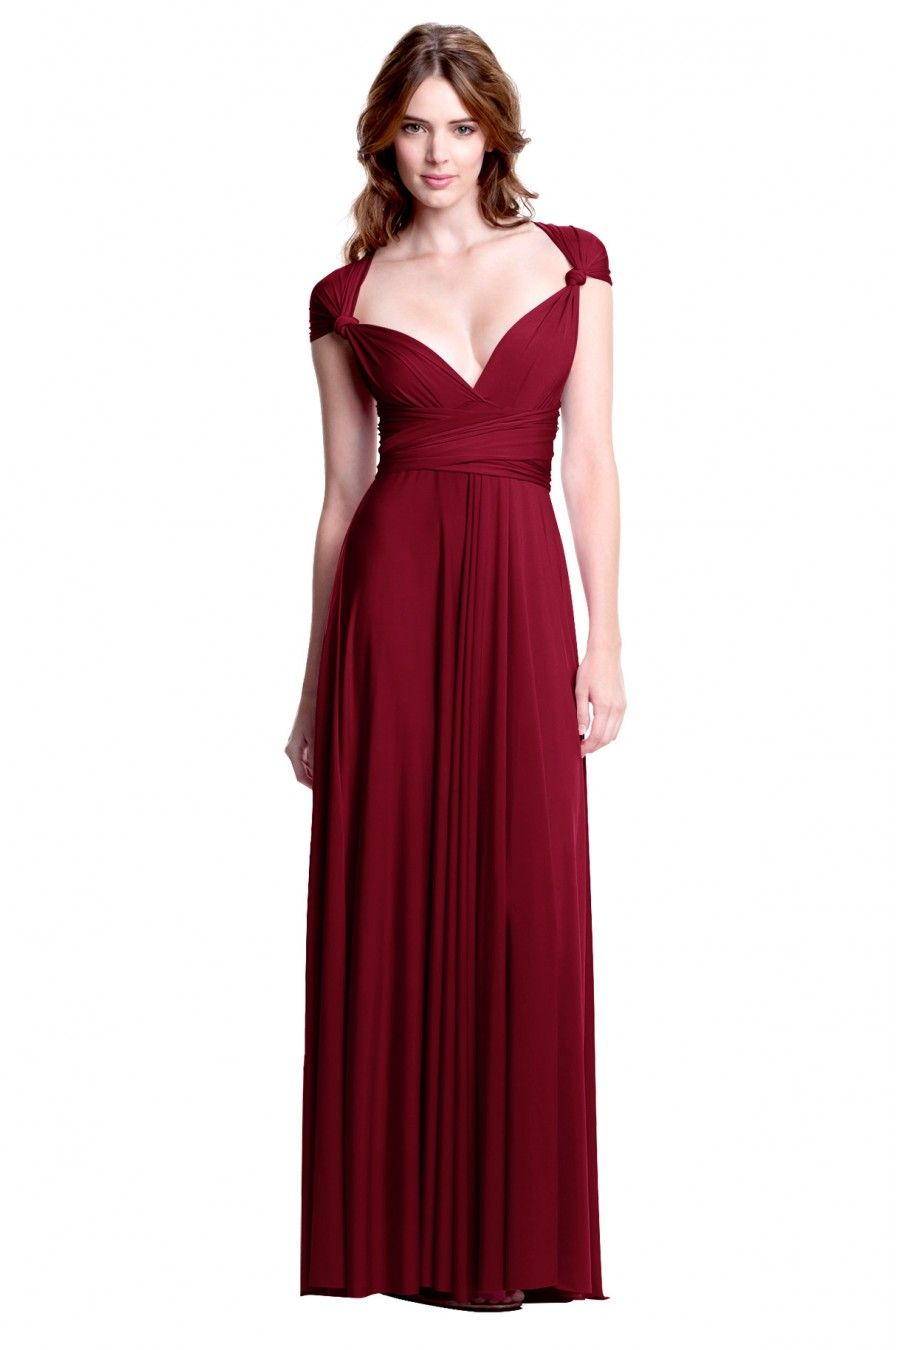 Ruby red bridesmaid dresses and rose top 50 ruby red bridesmaid ruby red bridesmaid dresses and rose top 50 ruby red bridesmaid dresses pinterest red bridesmaids ruby red and popsugar ombrellifo Choice Image